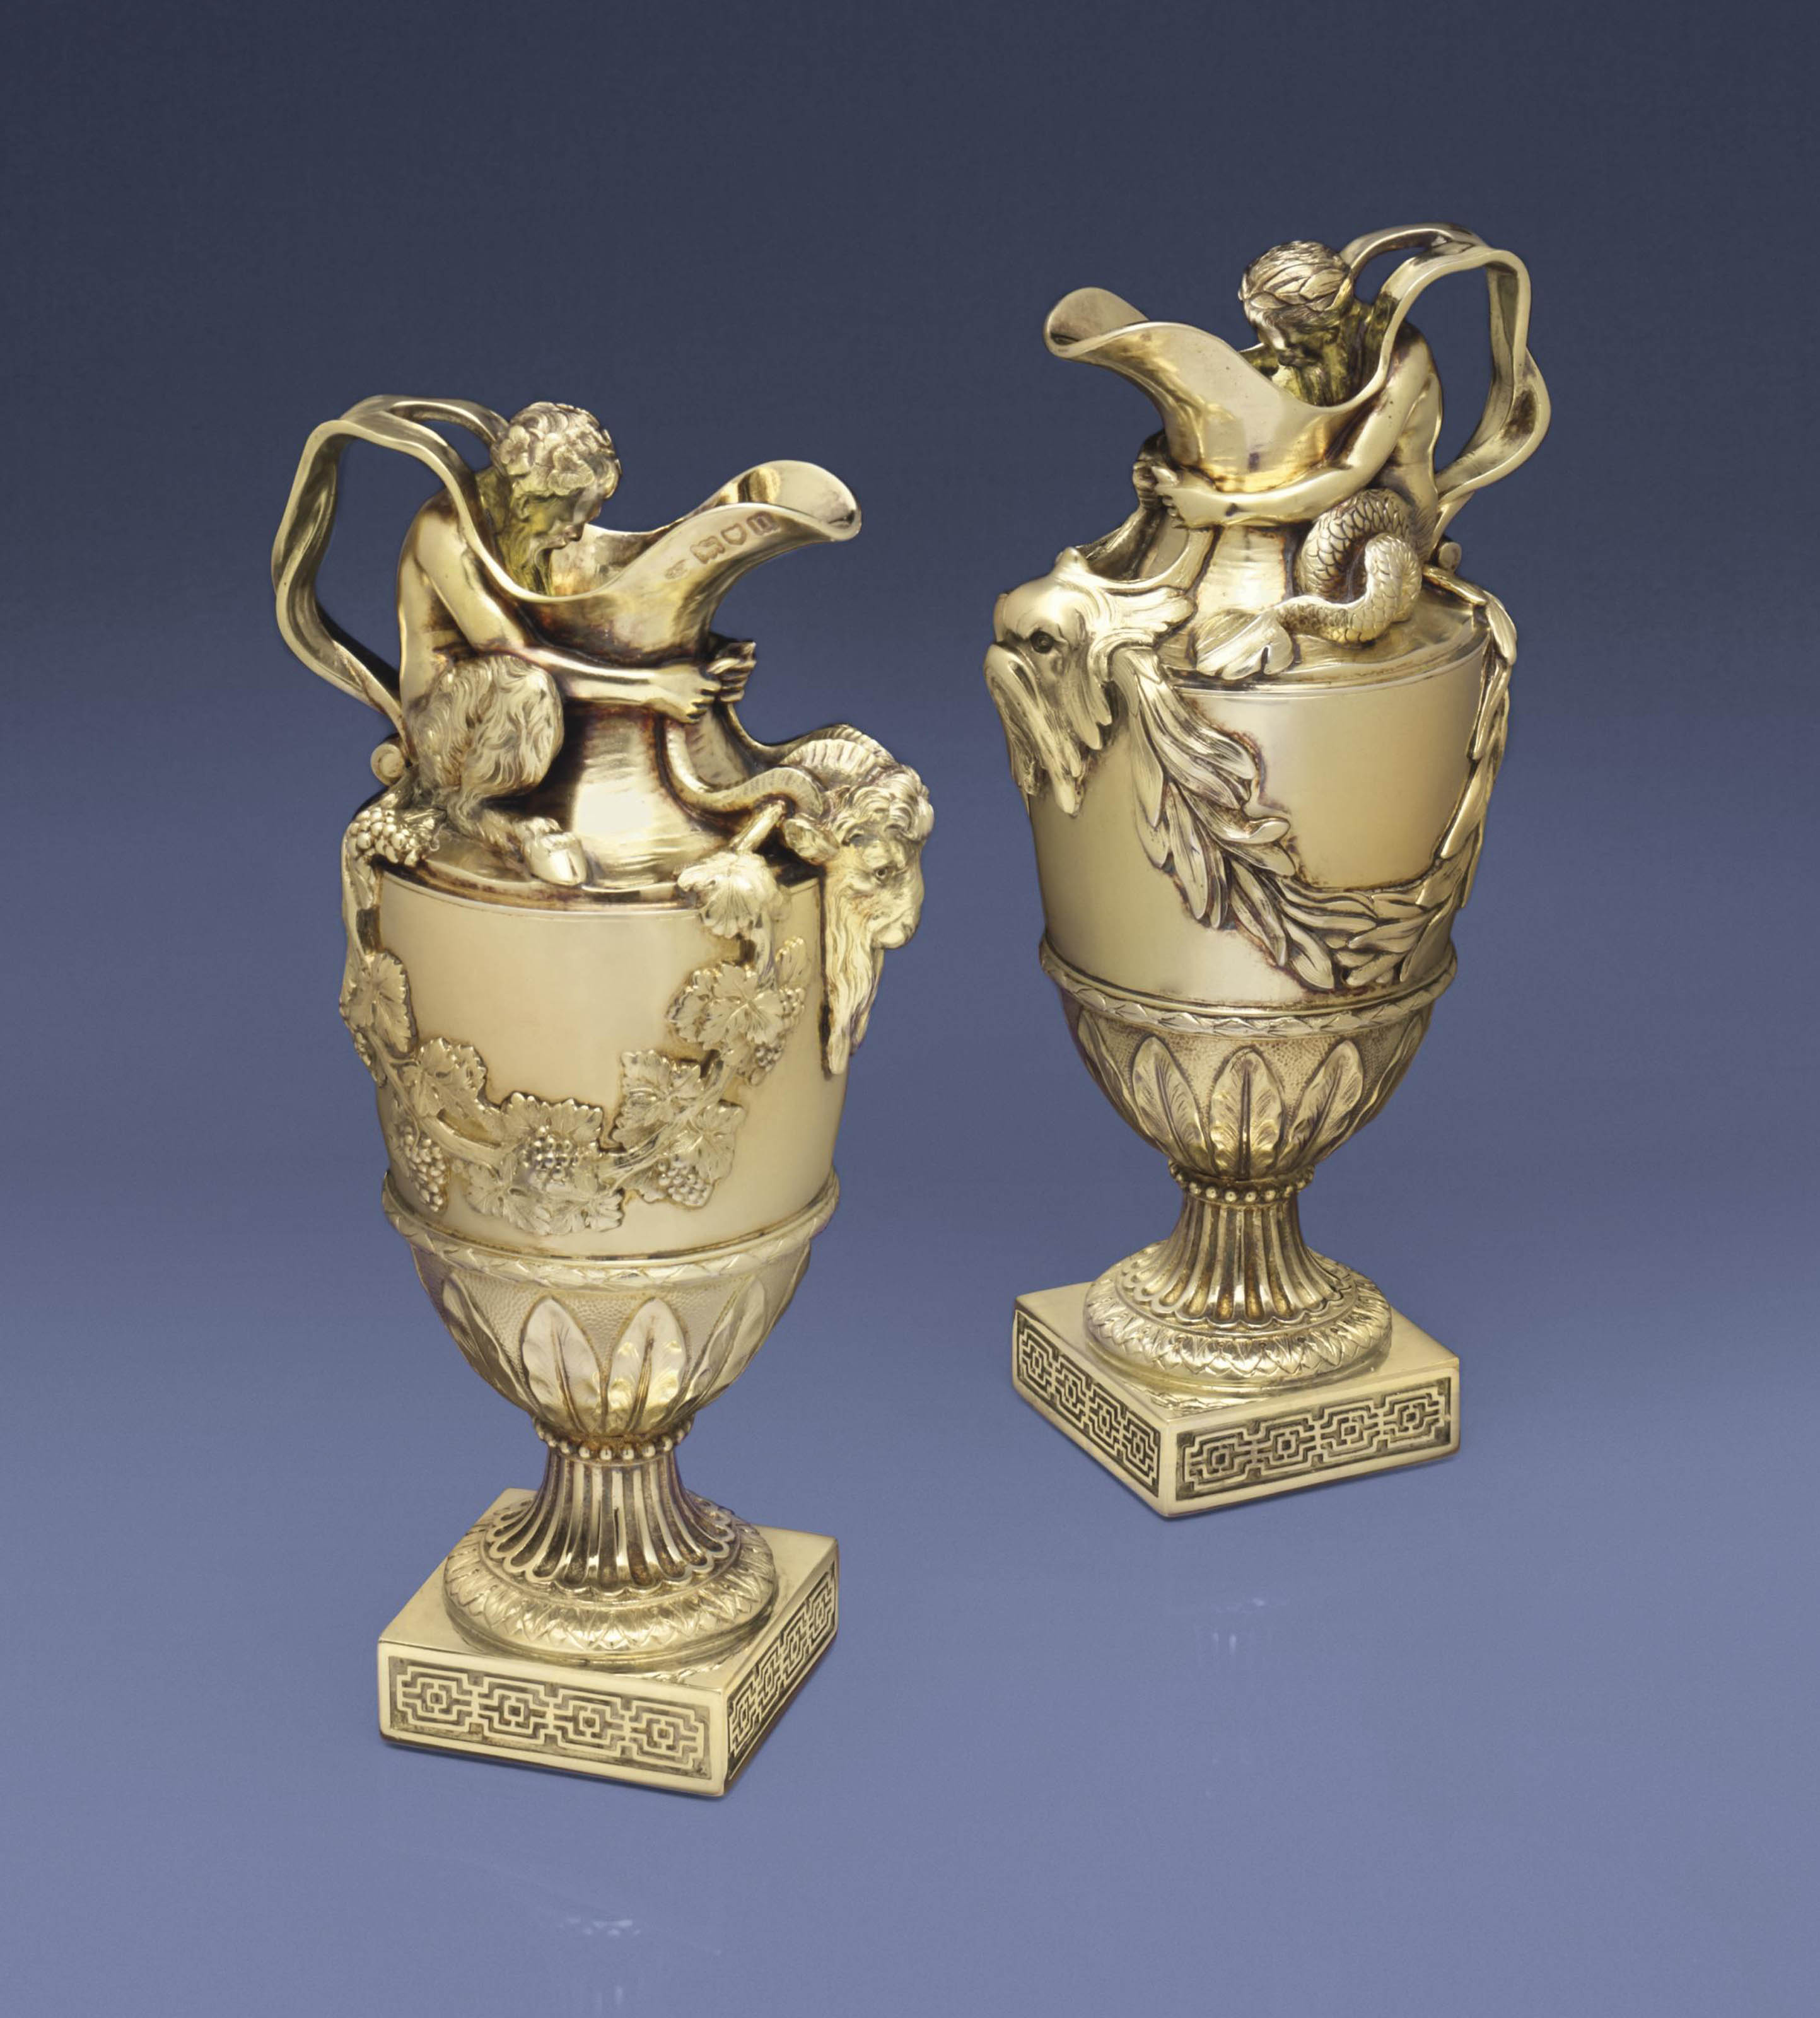 A PAIR OF EDWARD VII SILVER-GILT EWERS